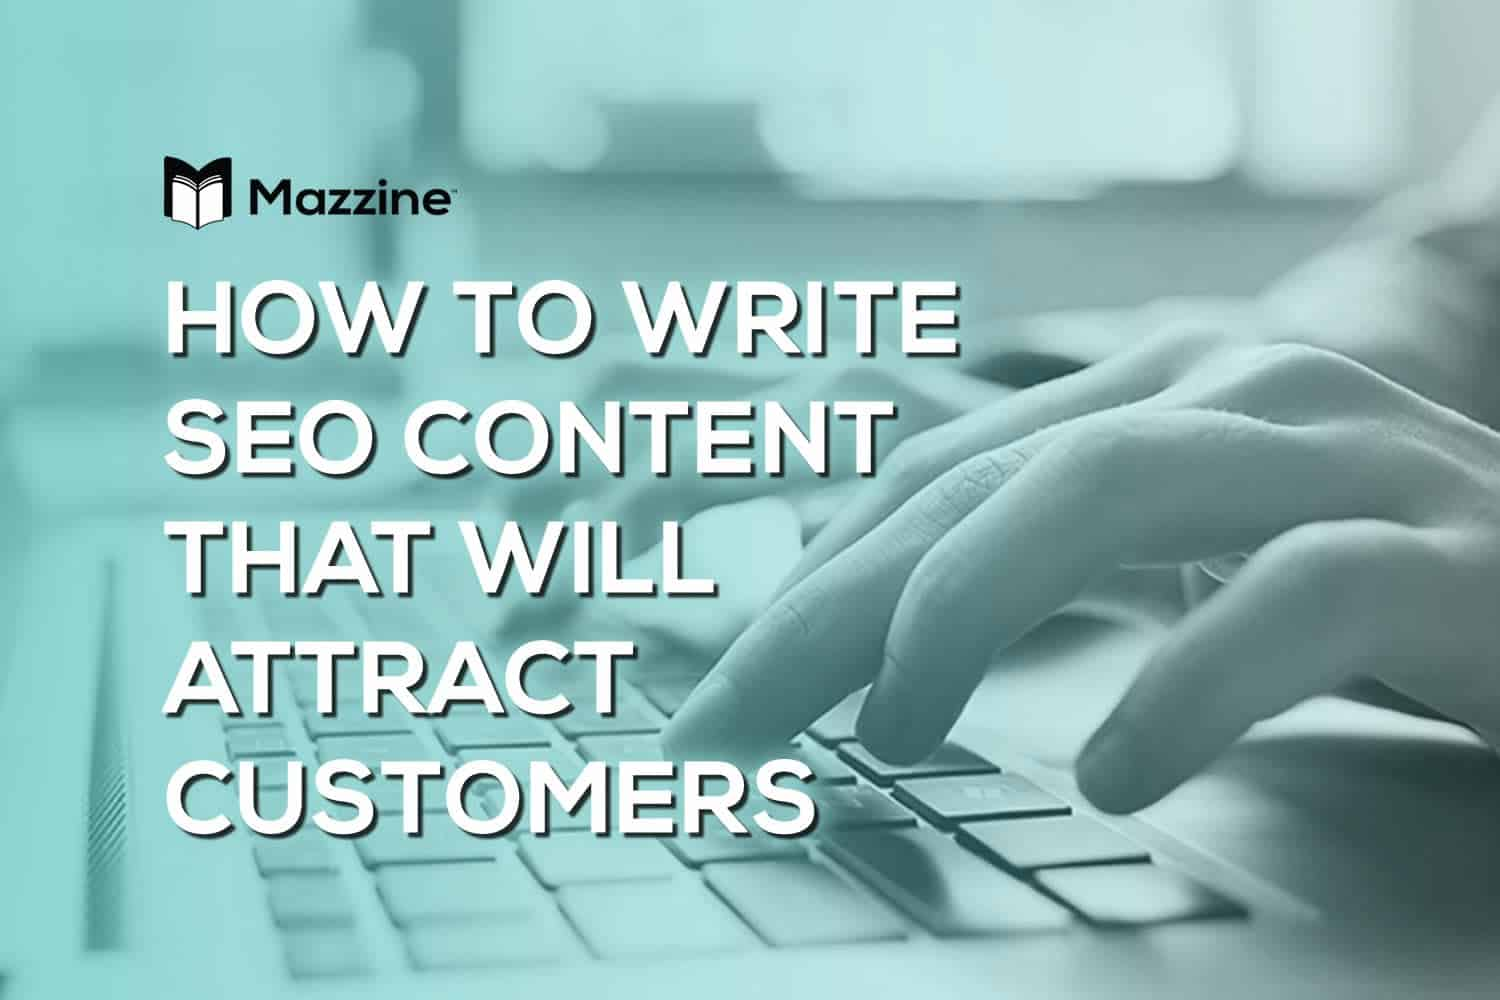 How to Write SEO Content That Will Attract Customers